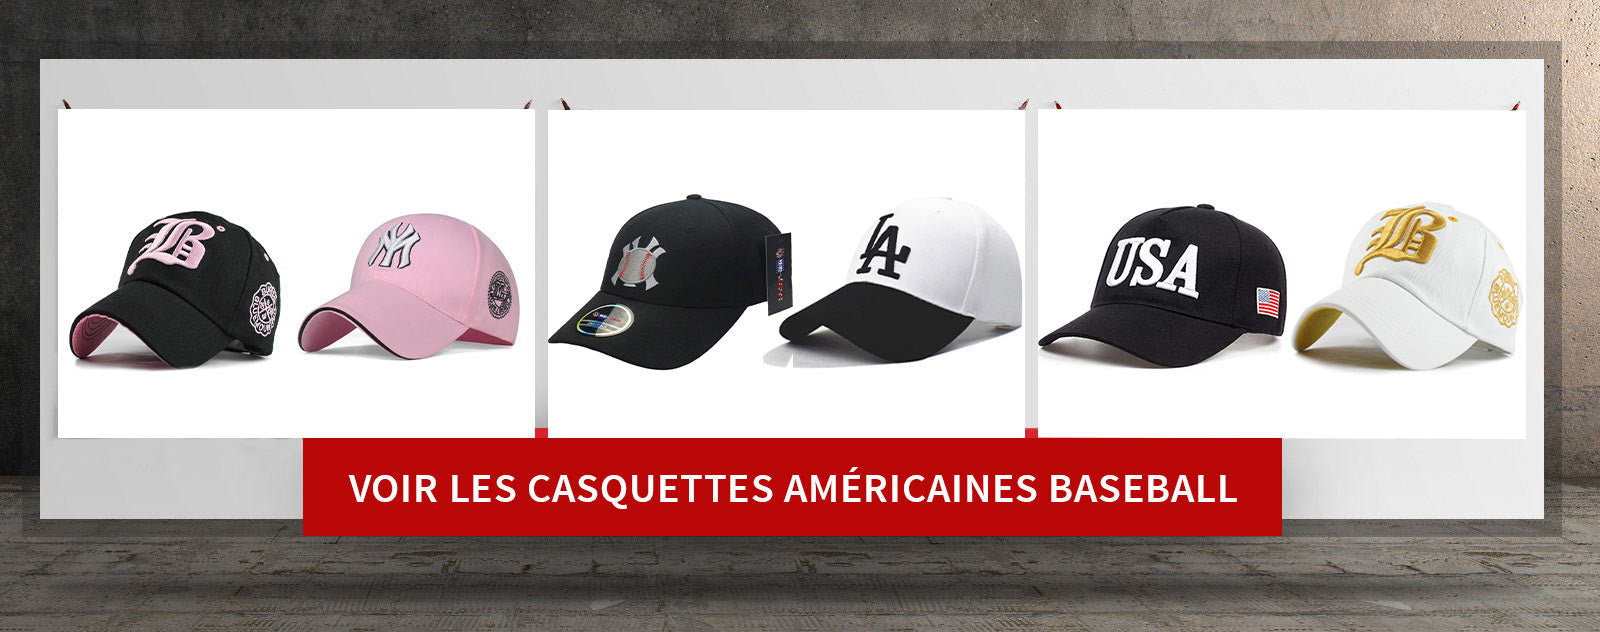 casquettes americaines baseball